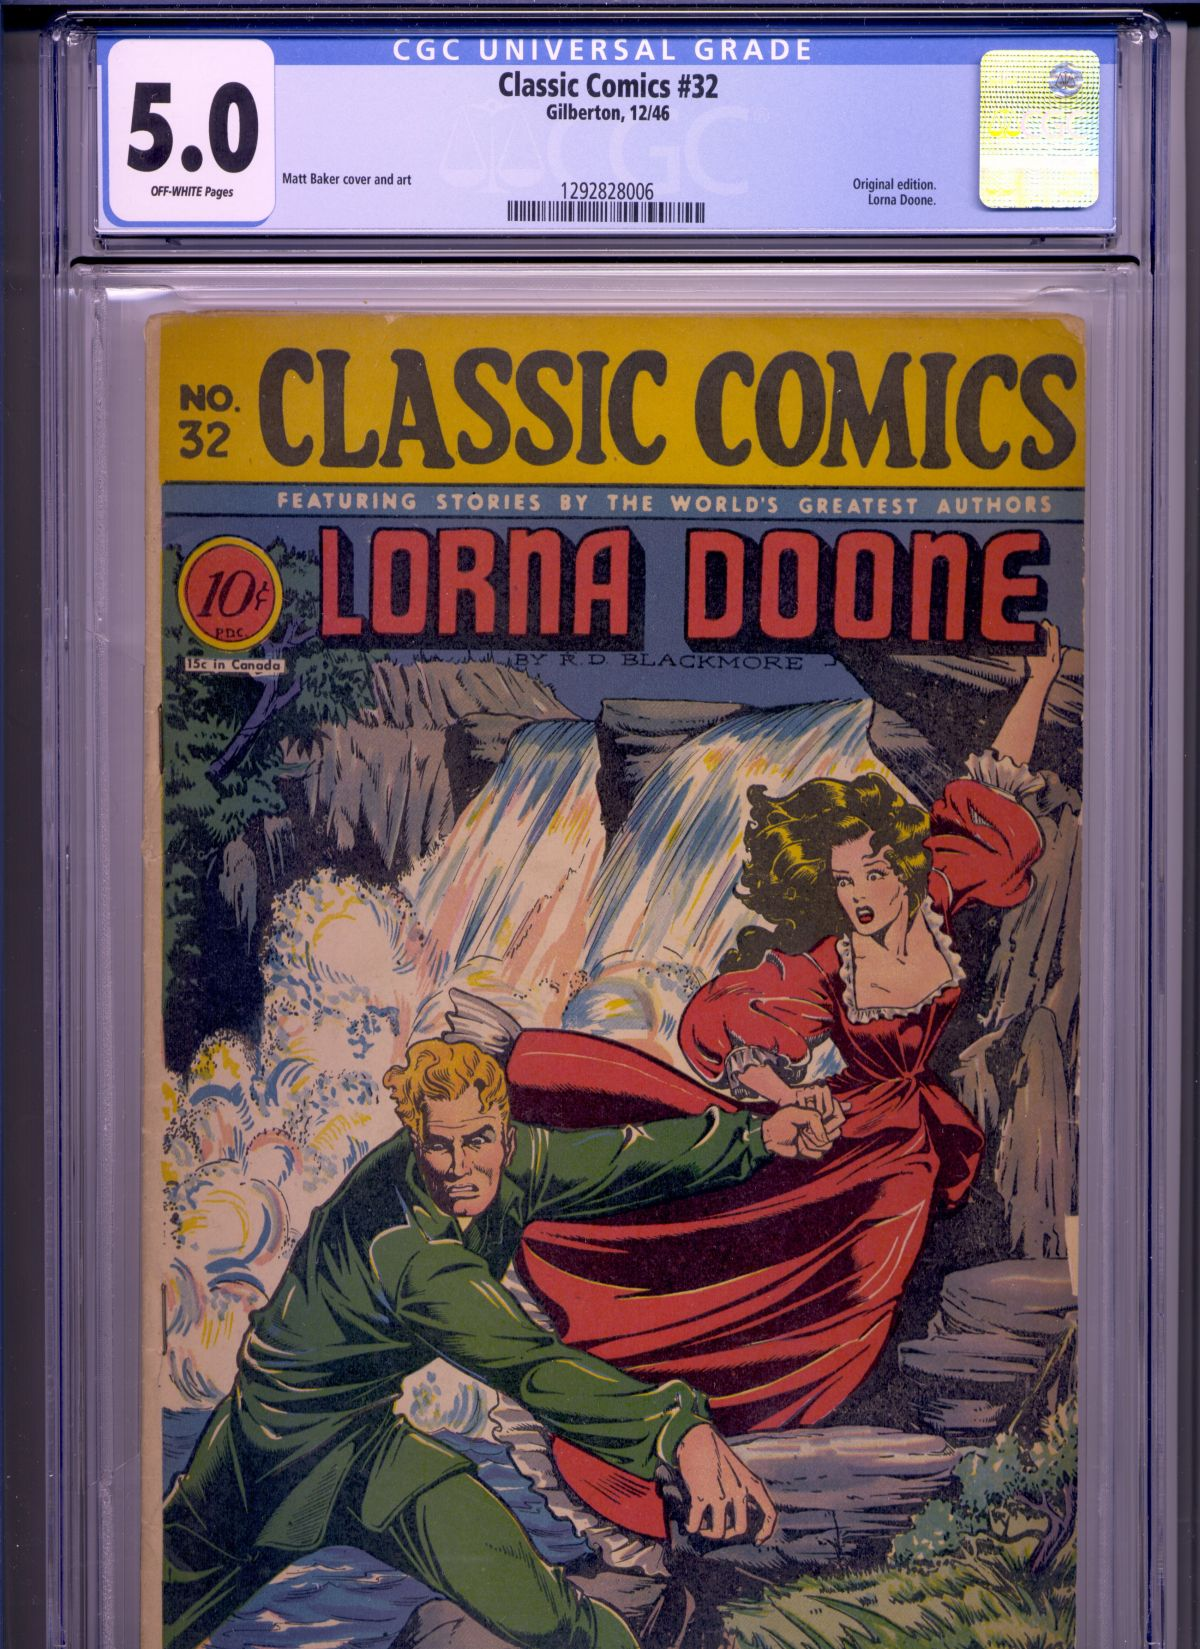 CLOSED] Classic Comics 32 - CGC 5 0 - $225 - Matt Baker Art